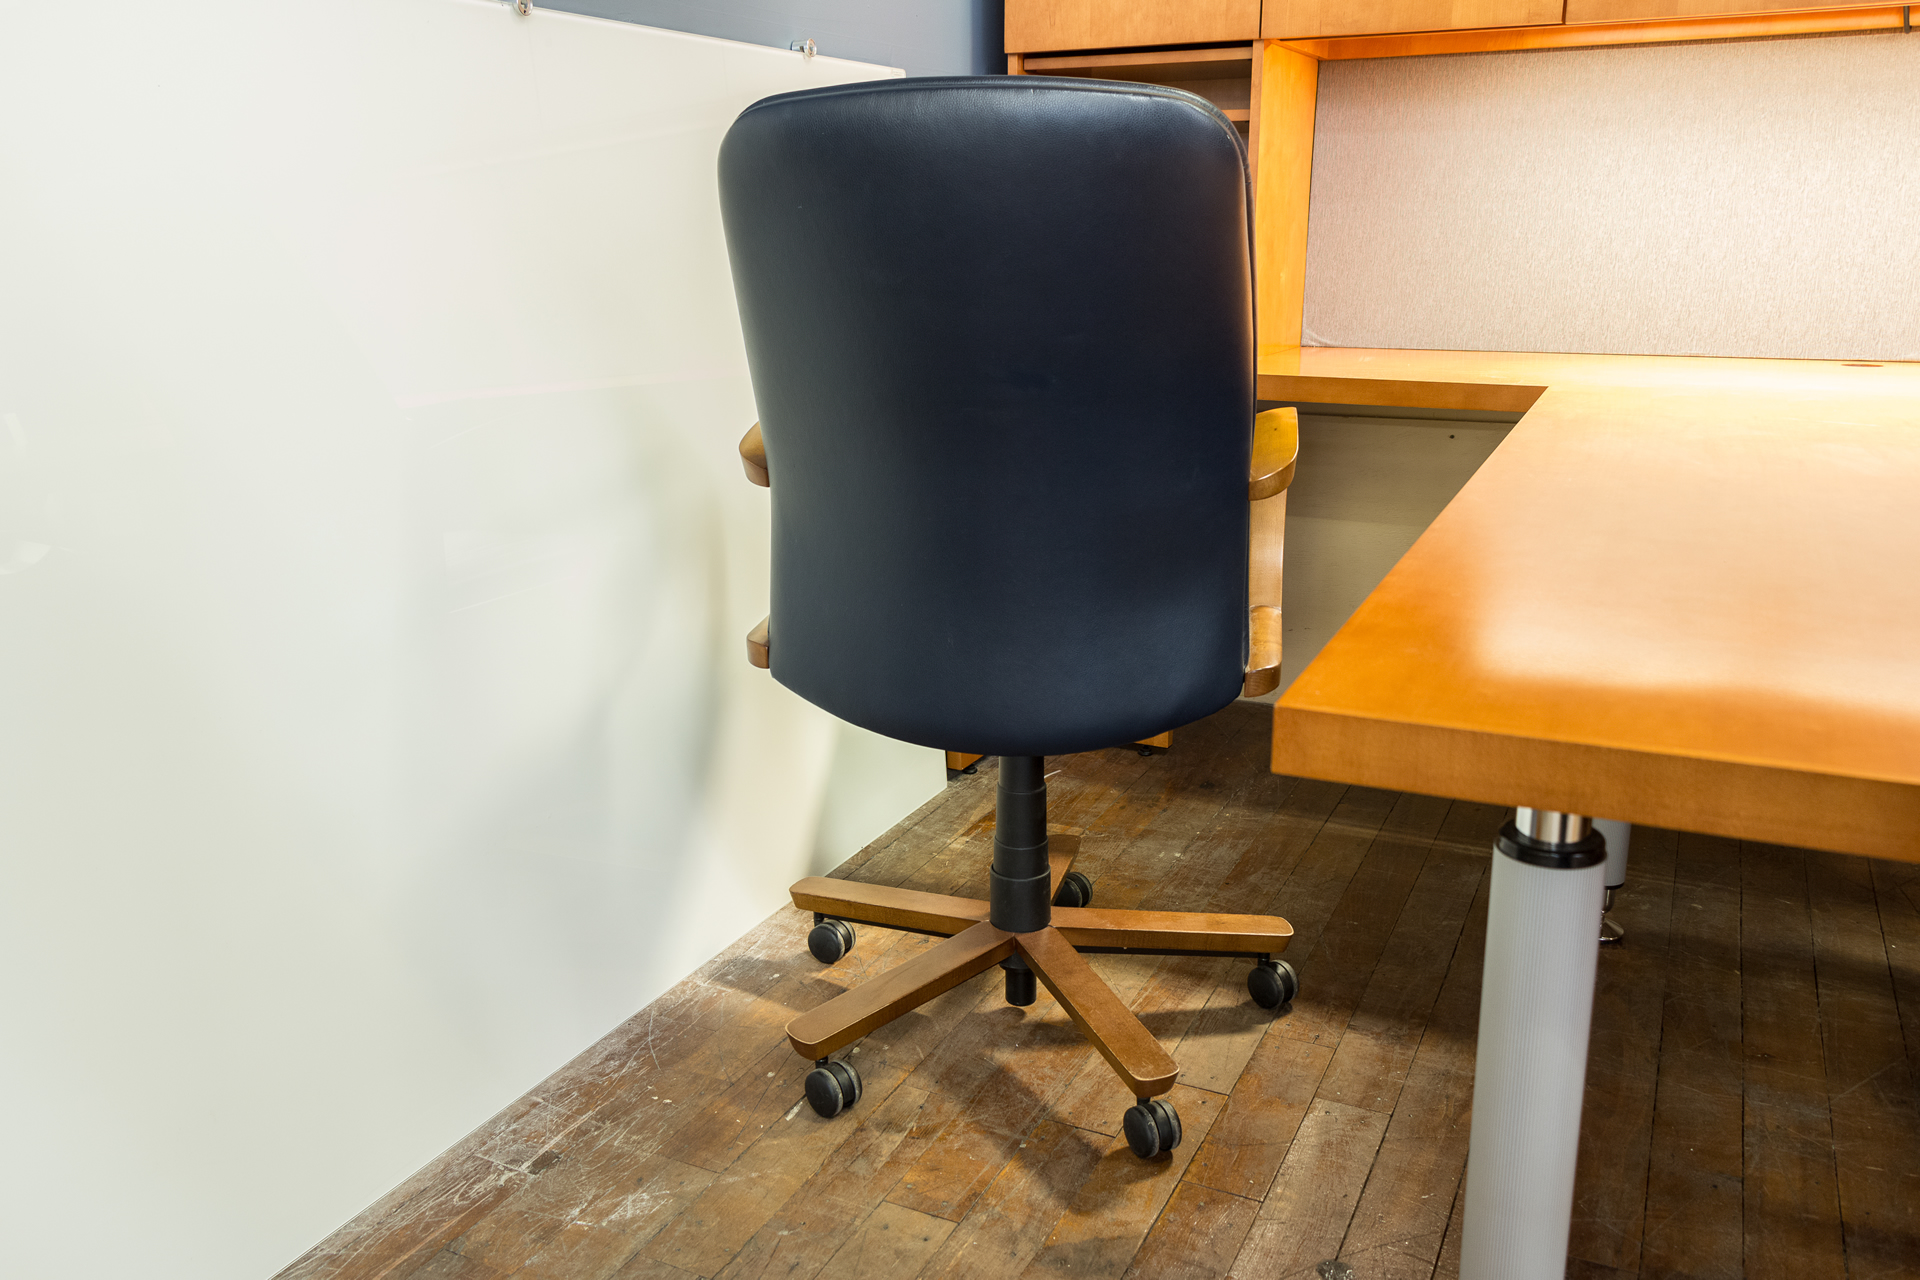 peartreeofficefurniture_peartreeofficefurniture_peartreeofficefurniture_kimball-triumph-leather-executive-conference-chairs-4.jpg